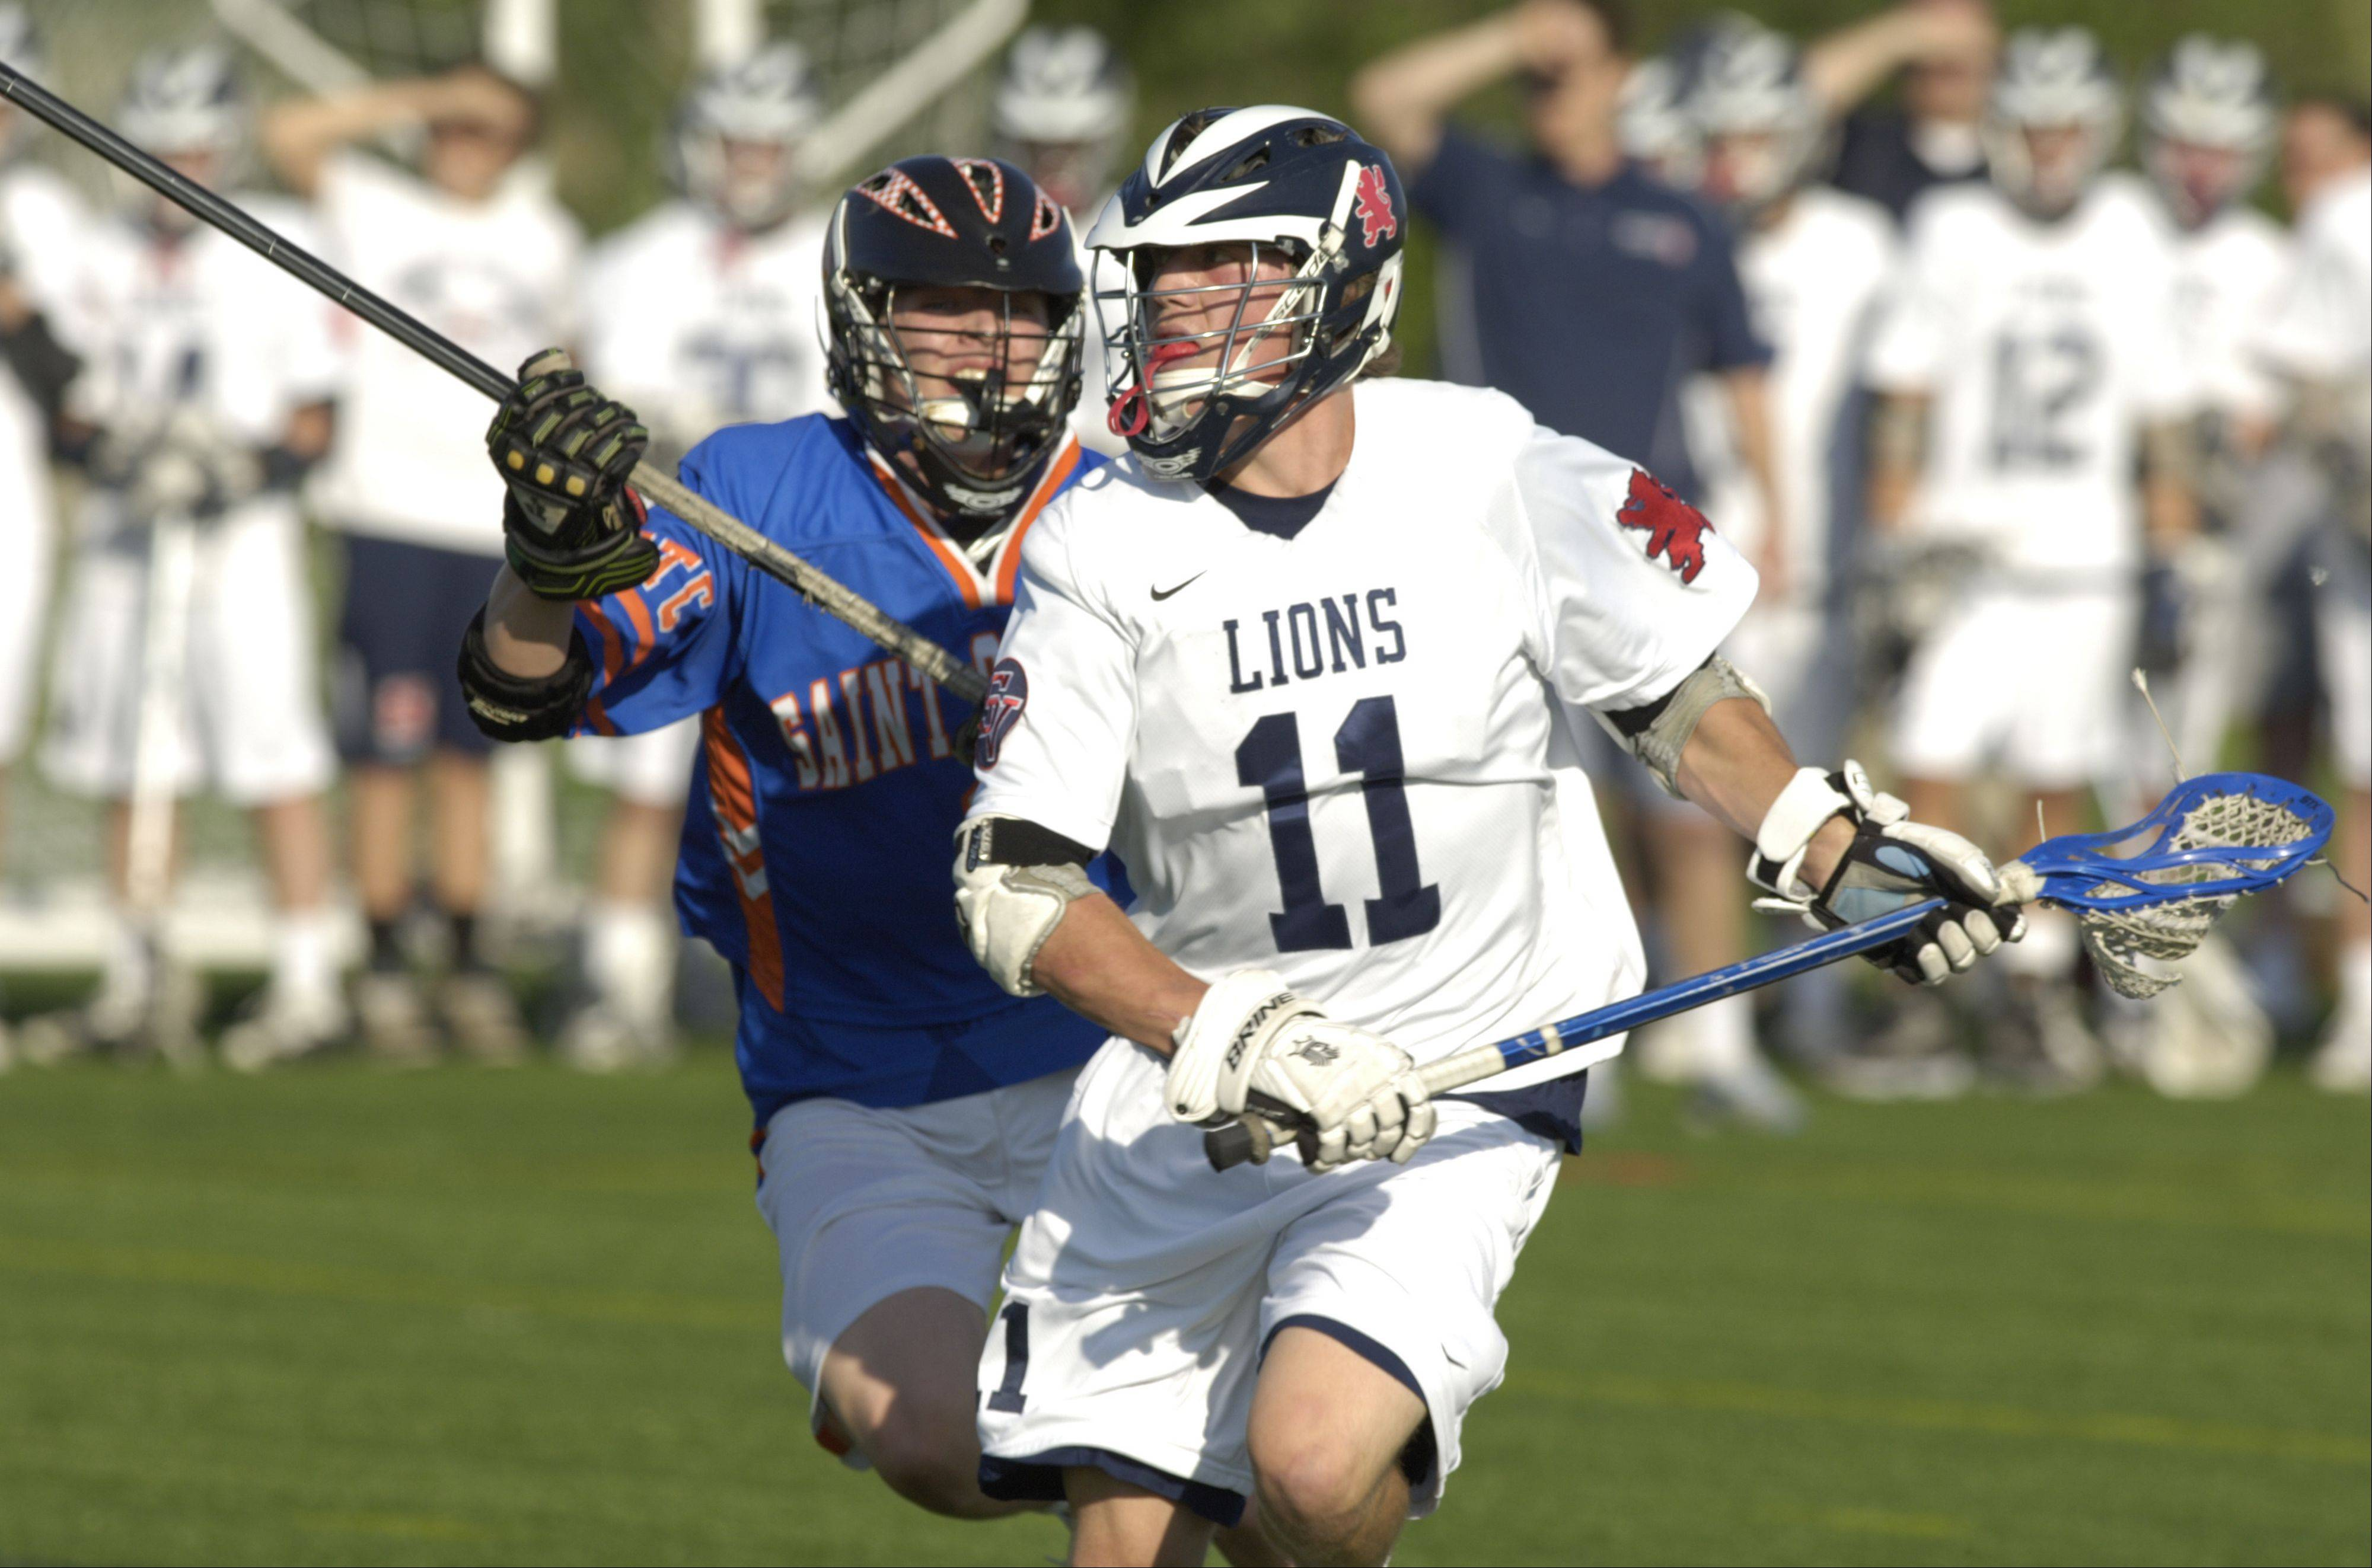 The National Federation of State High School Associations has approved several rules changes for the 2012 boys lacrosse season.